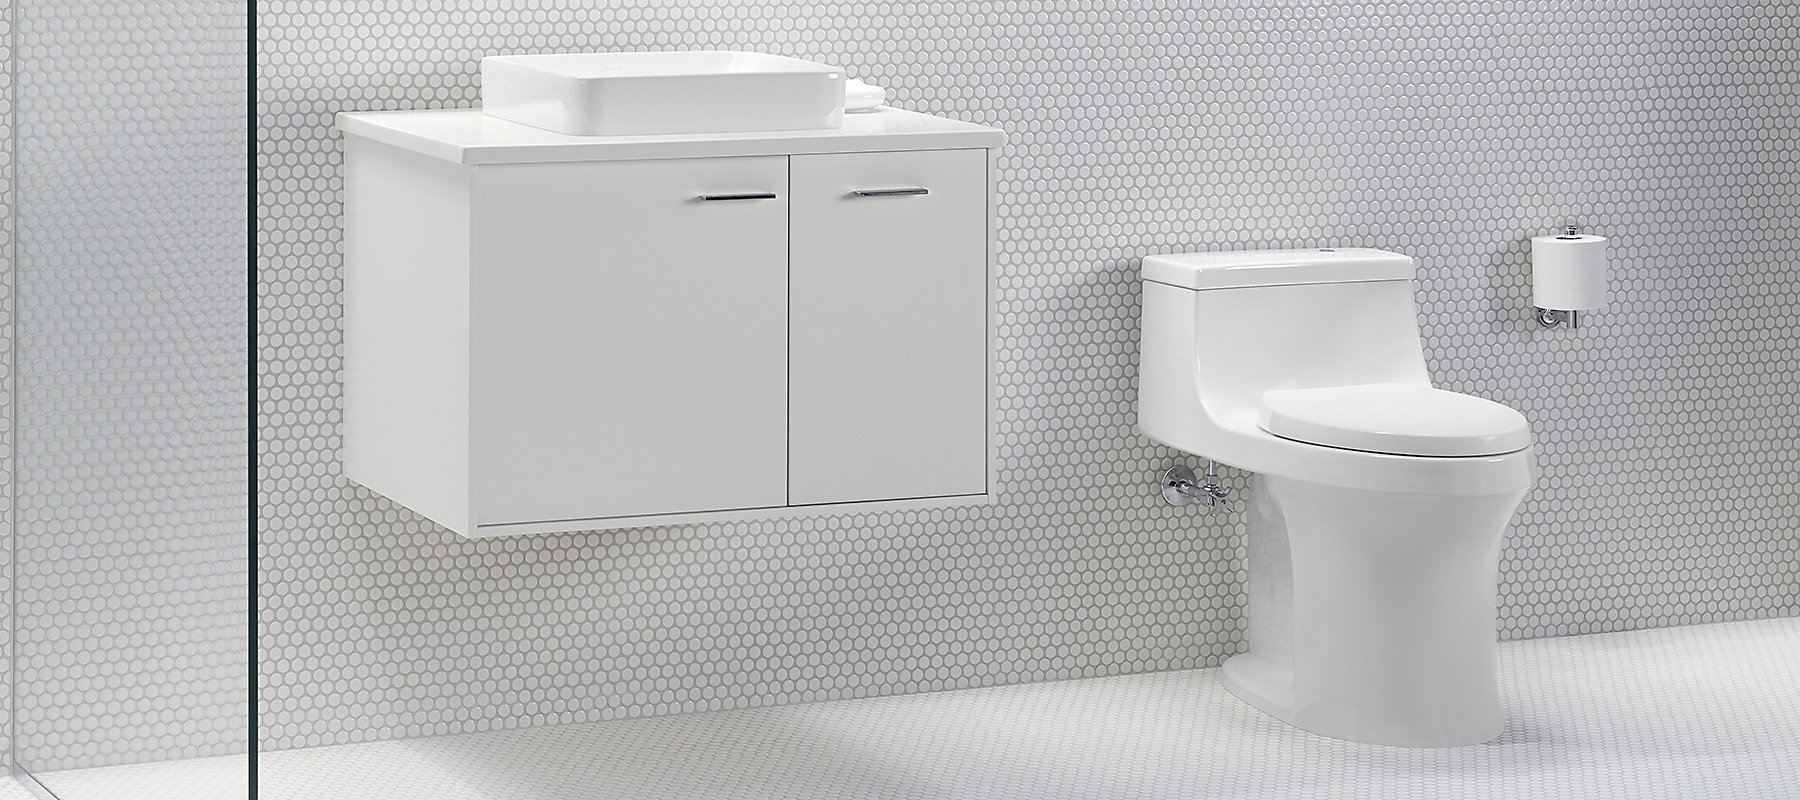 Bathroom | KOHLER on kitchen and toilet design, bath and toilet design, bathroom sinks kohler toilet colors,